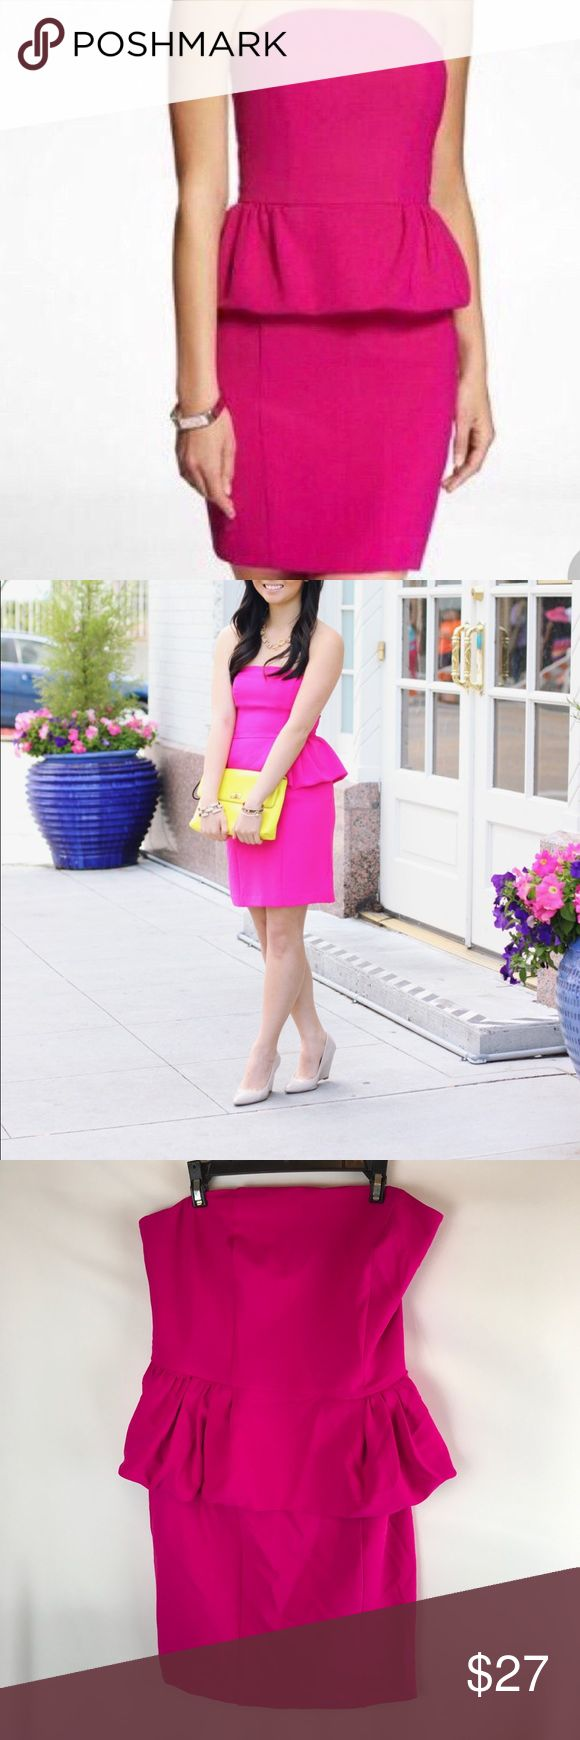 Express Hot Pink Peplum Tube Top Body-con Dress Like New, Washed & Worn Only Once! Express Hot Pink Dress! Mini Dress, Peplum Waist, Fully Lined, Detachable Straps are Not Included, Back Zipper, Hook & Eye Closure, Mini Back Vent Skirt. Super Girly!!! From a Smoke Free Home. Express Dresses Strapless